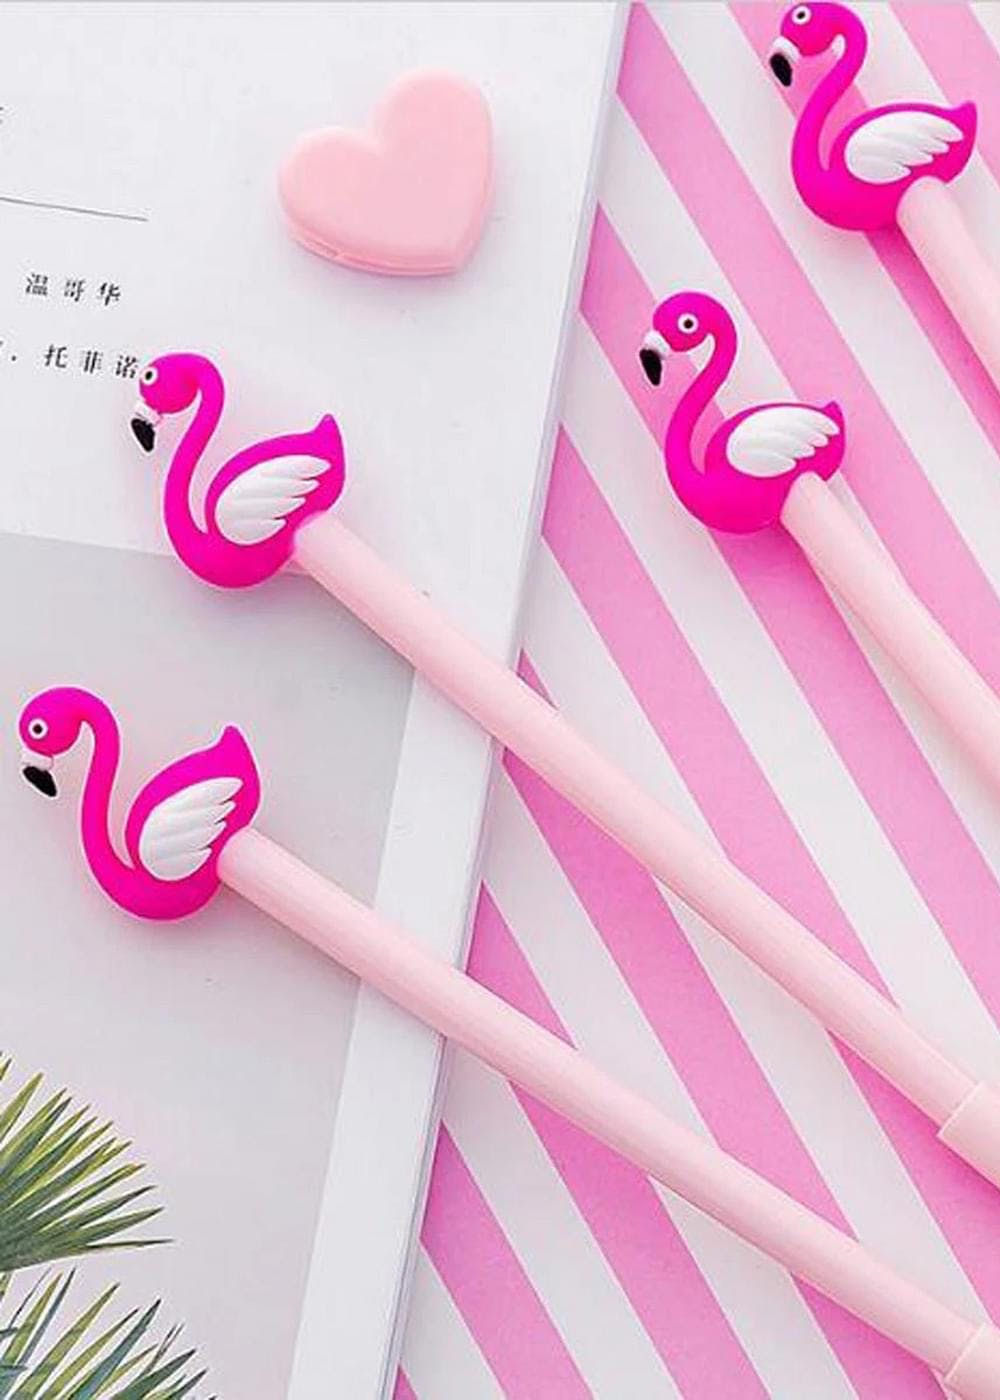 Pink,Stick candy,Confectionery,Water bird,Candy,Flamingo,Lollipop